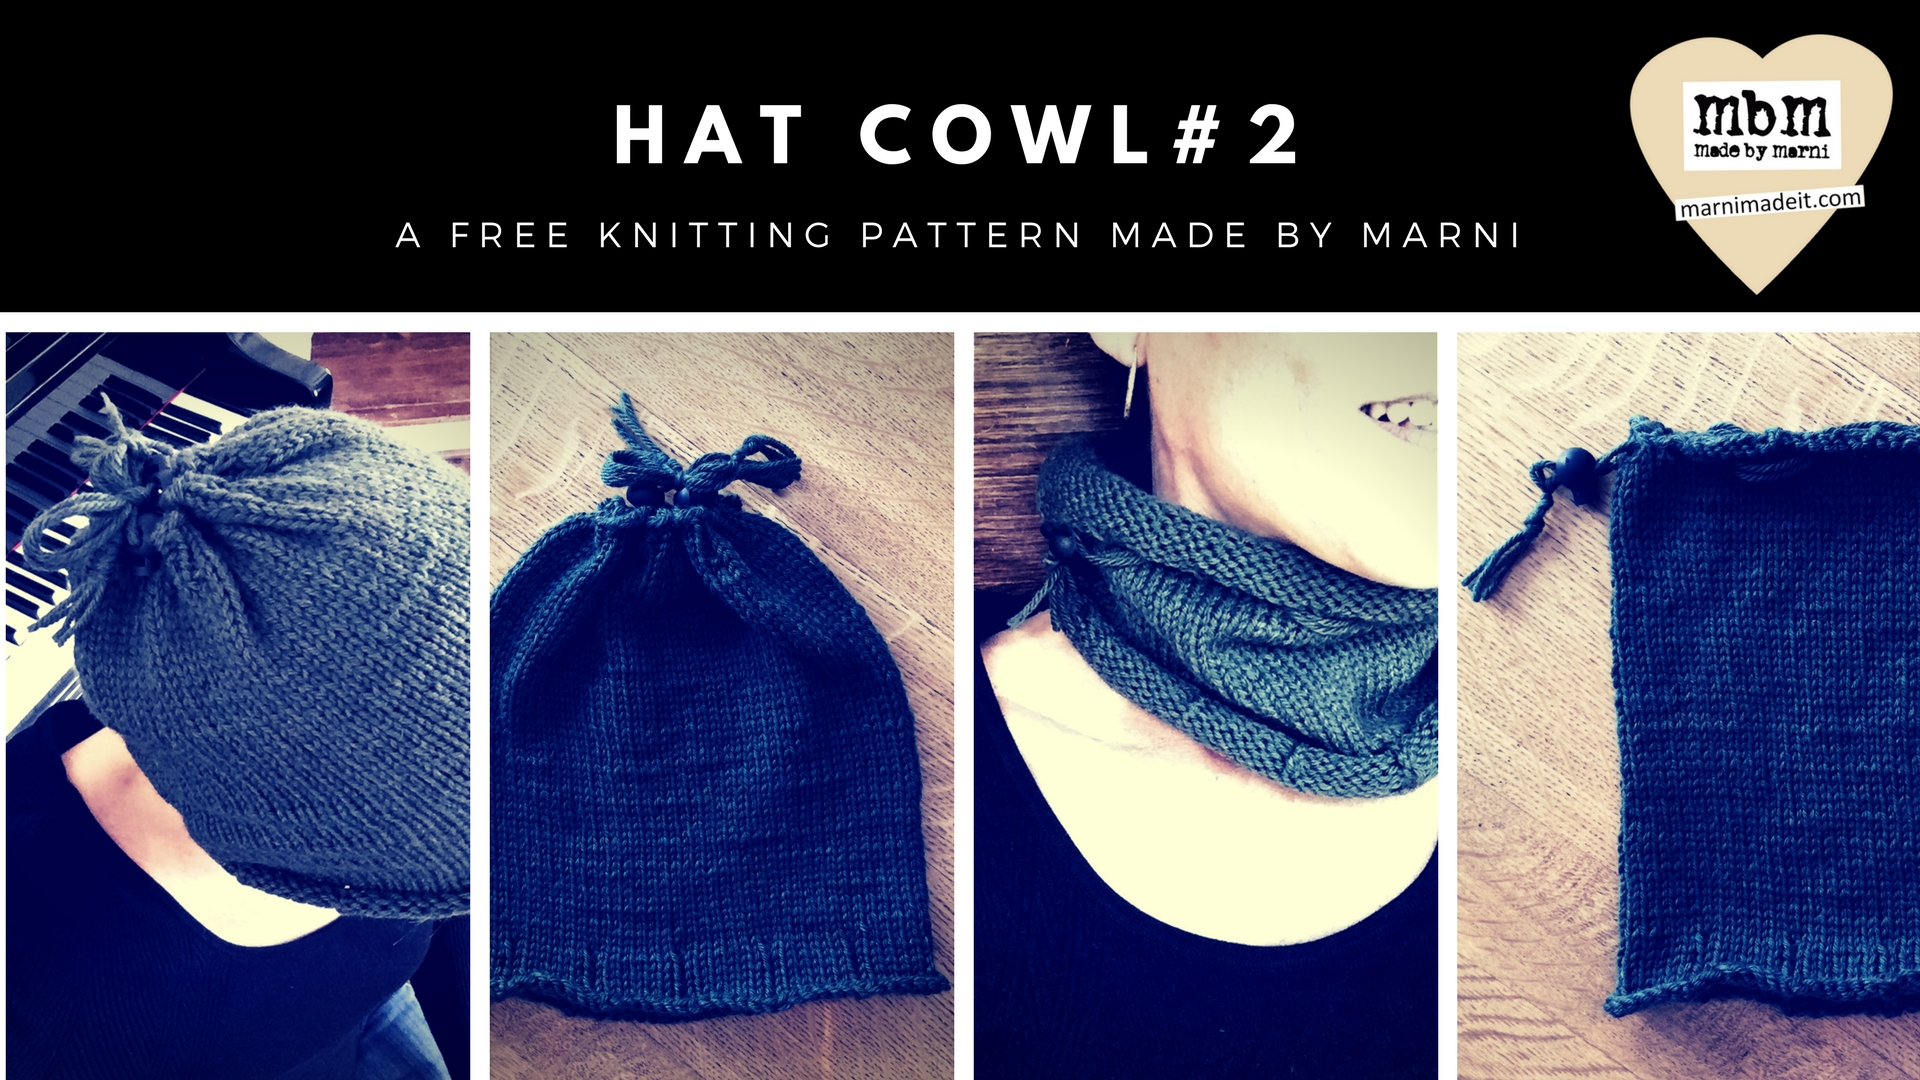 Hat Cowl #2 Free Knitting Pattern